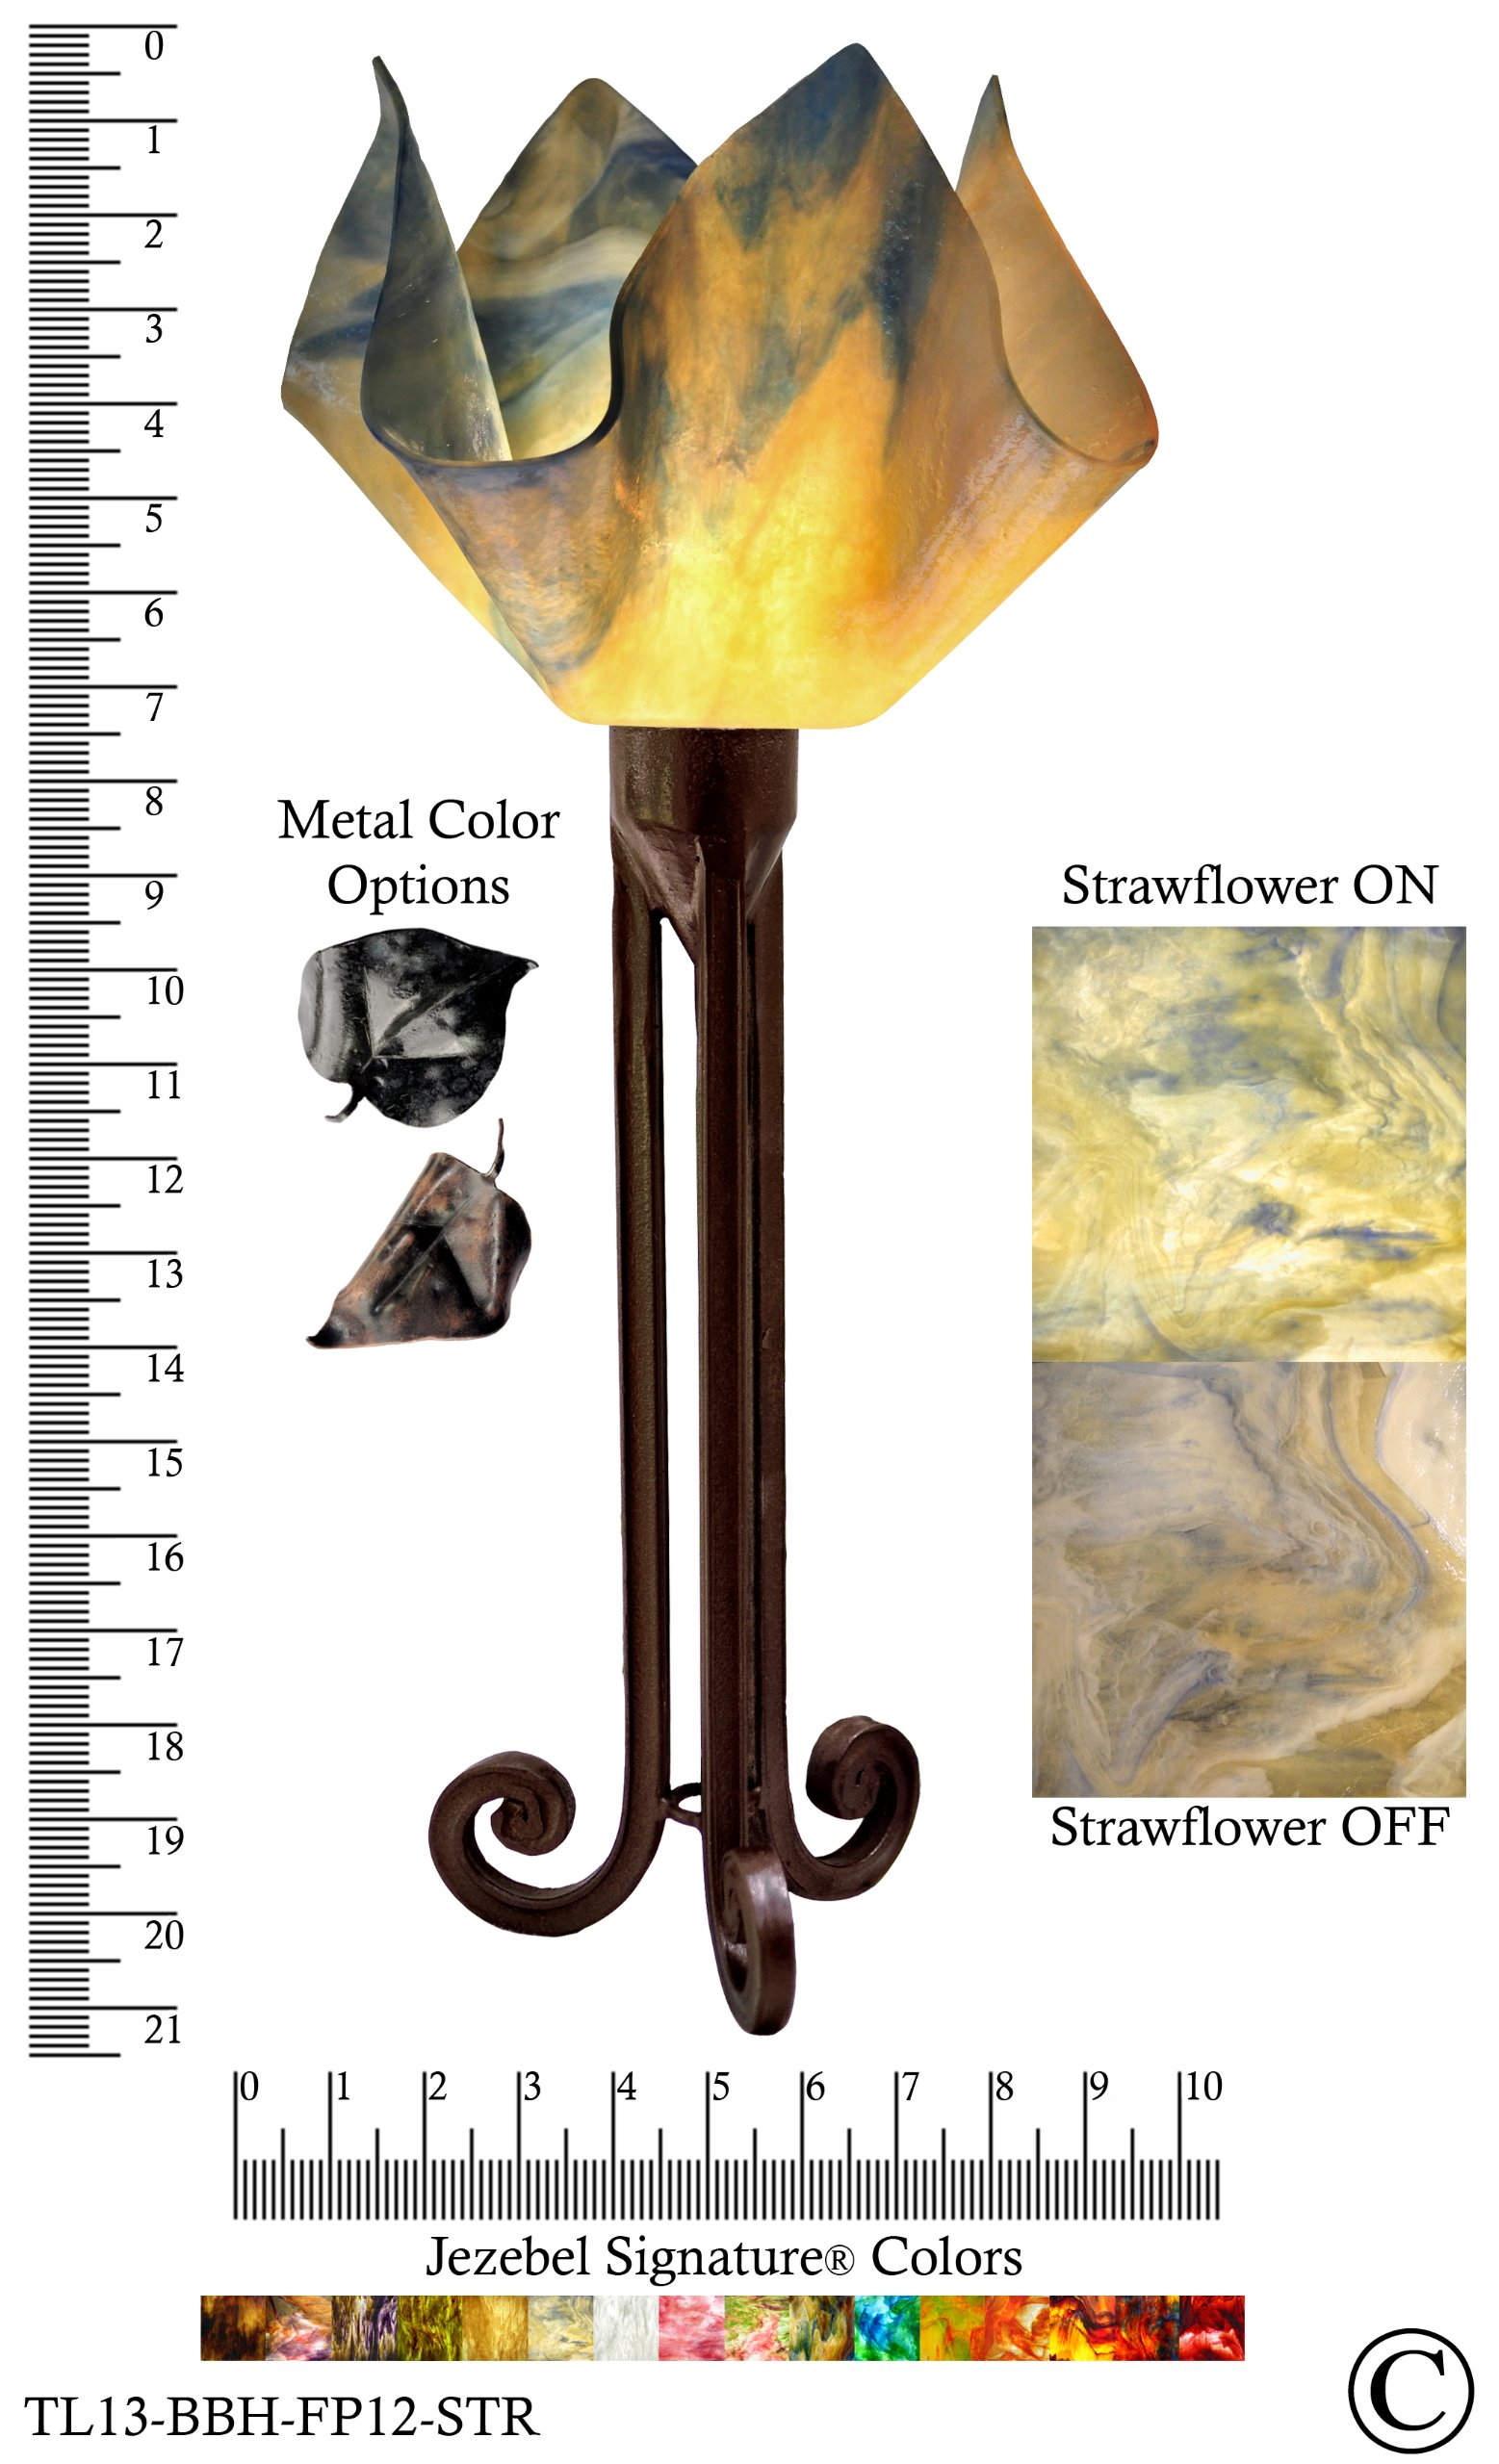 Jezebel Signature® Torch Light. Hardware: Brown with Brown Highlights. Glass: Strawflower, Flame Style